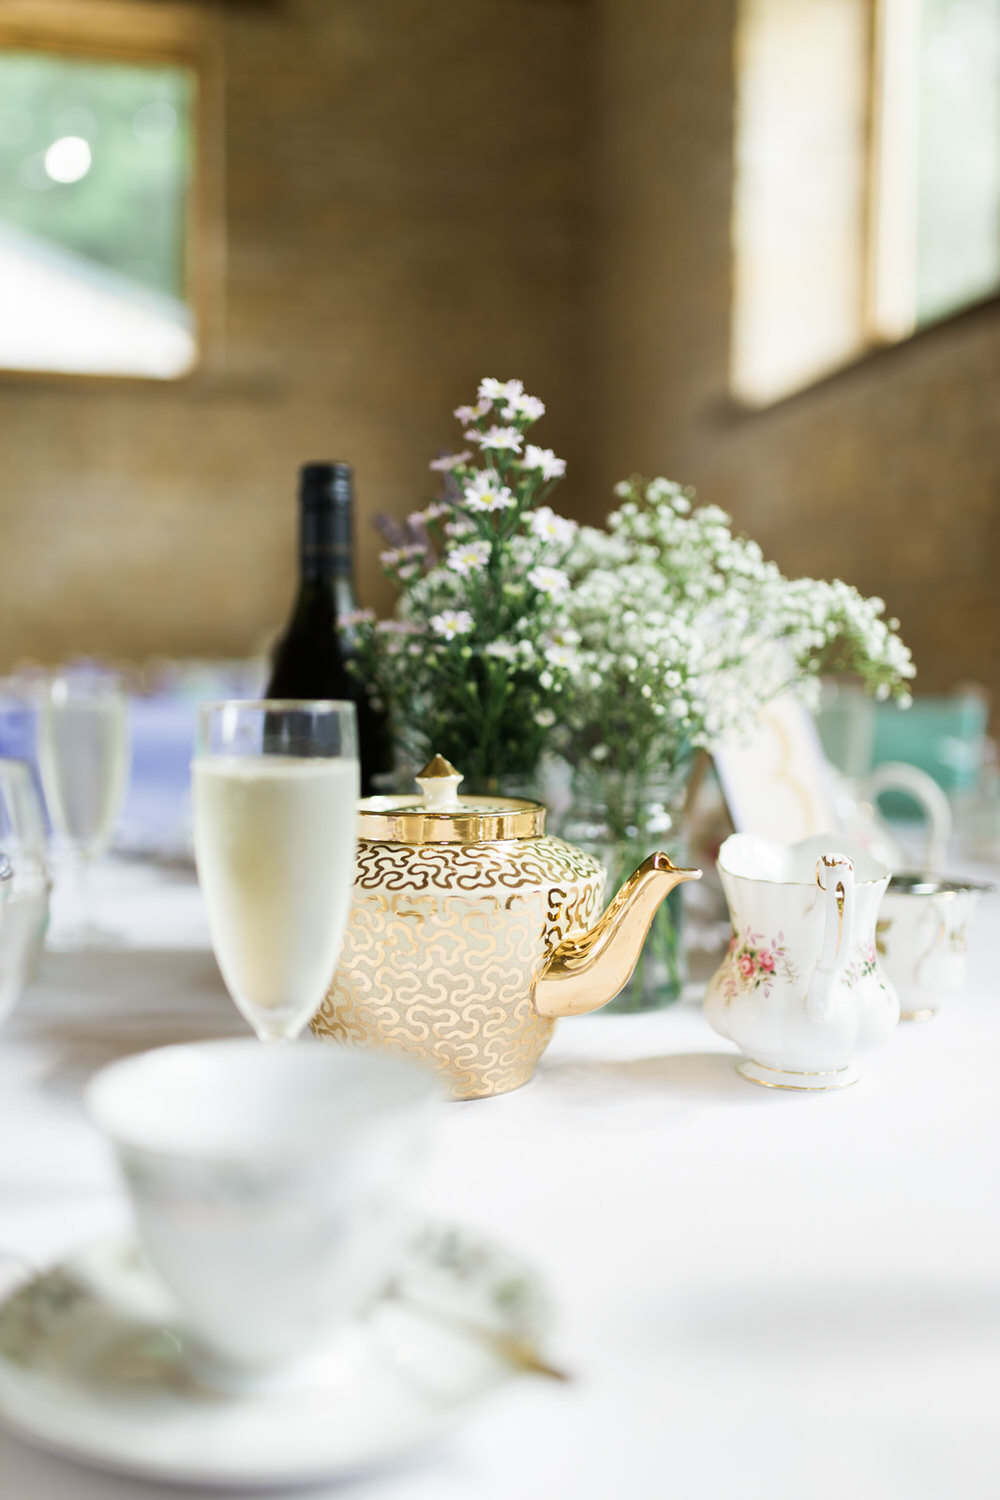 Special-Day-Photography-The-Barn-At-Upcote-Cheltenham-Table-decorations-at-The-Barn-At-Upcote-tGold-teapot-table-decorations-for-a-wedding.jpg